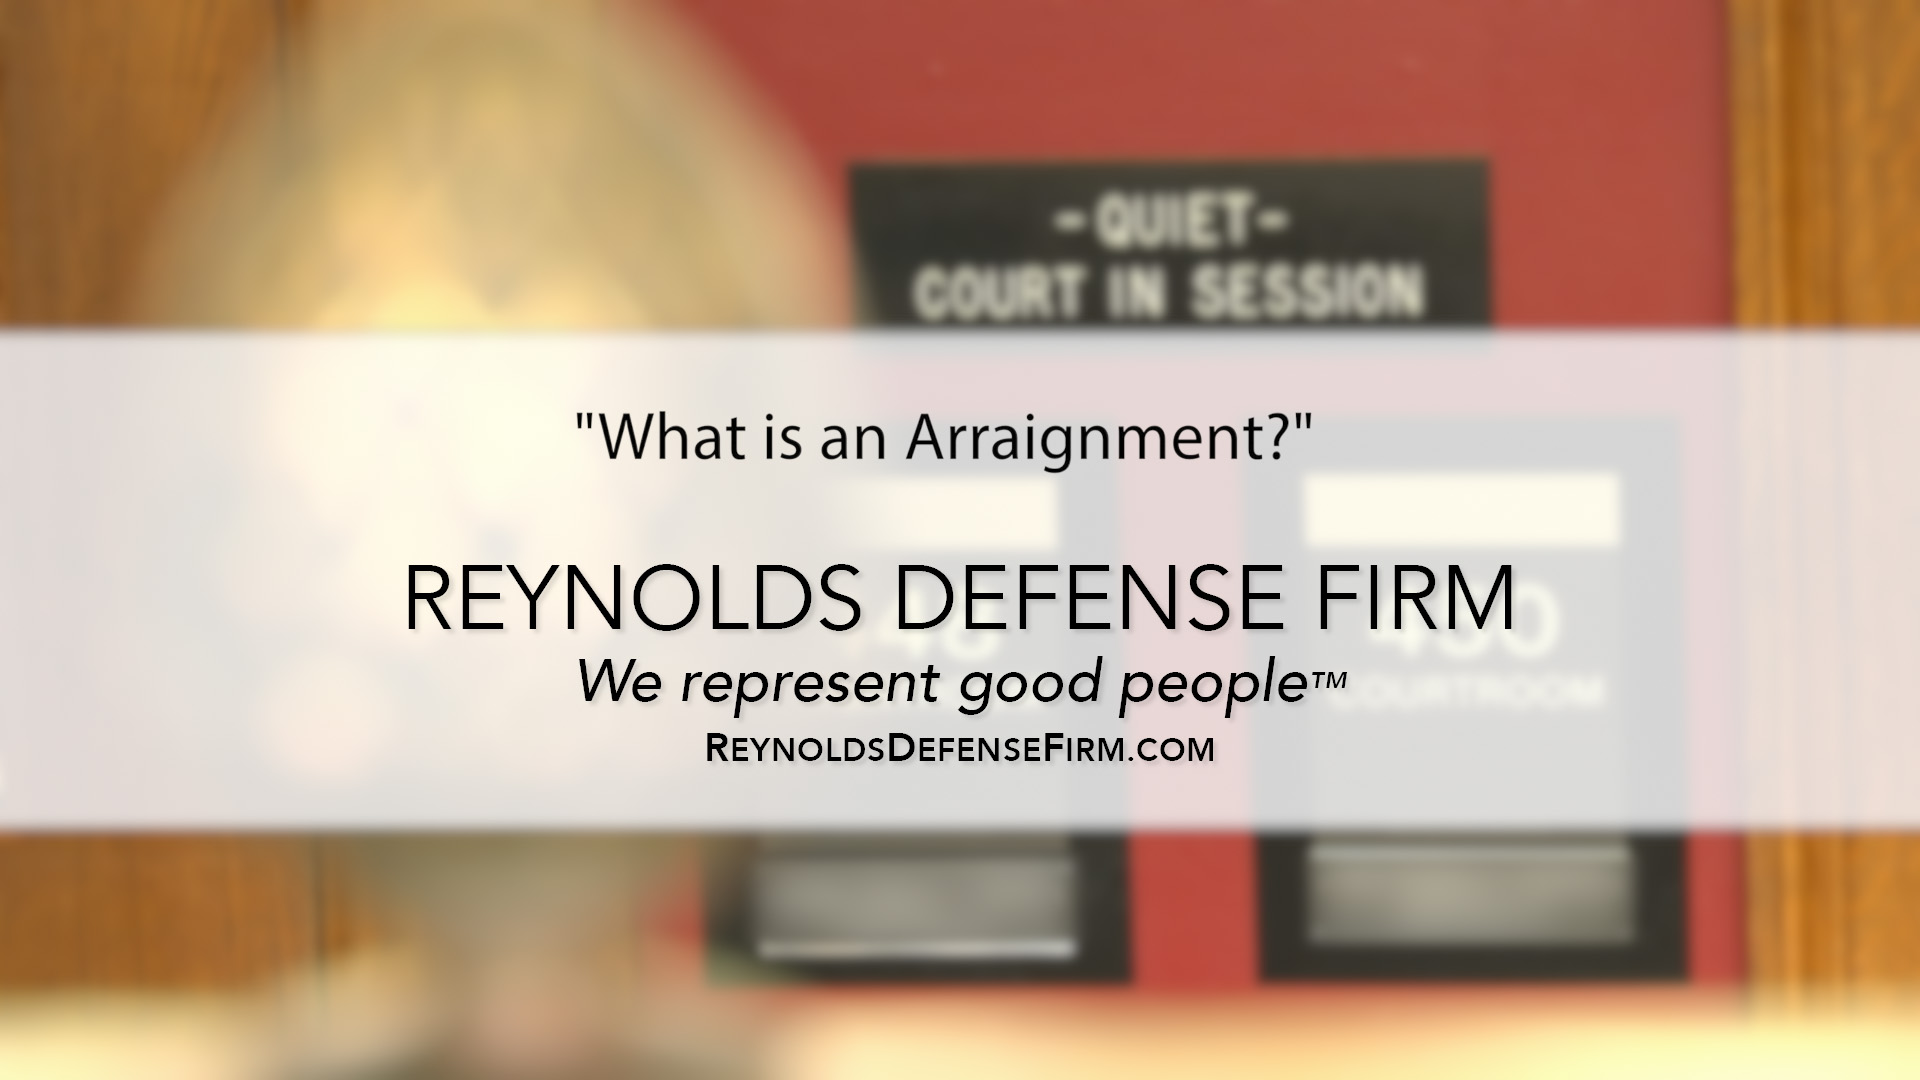 What is an Arraignment?